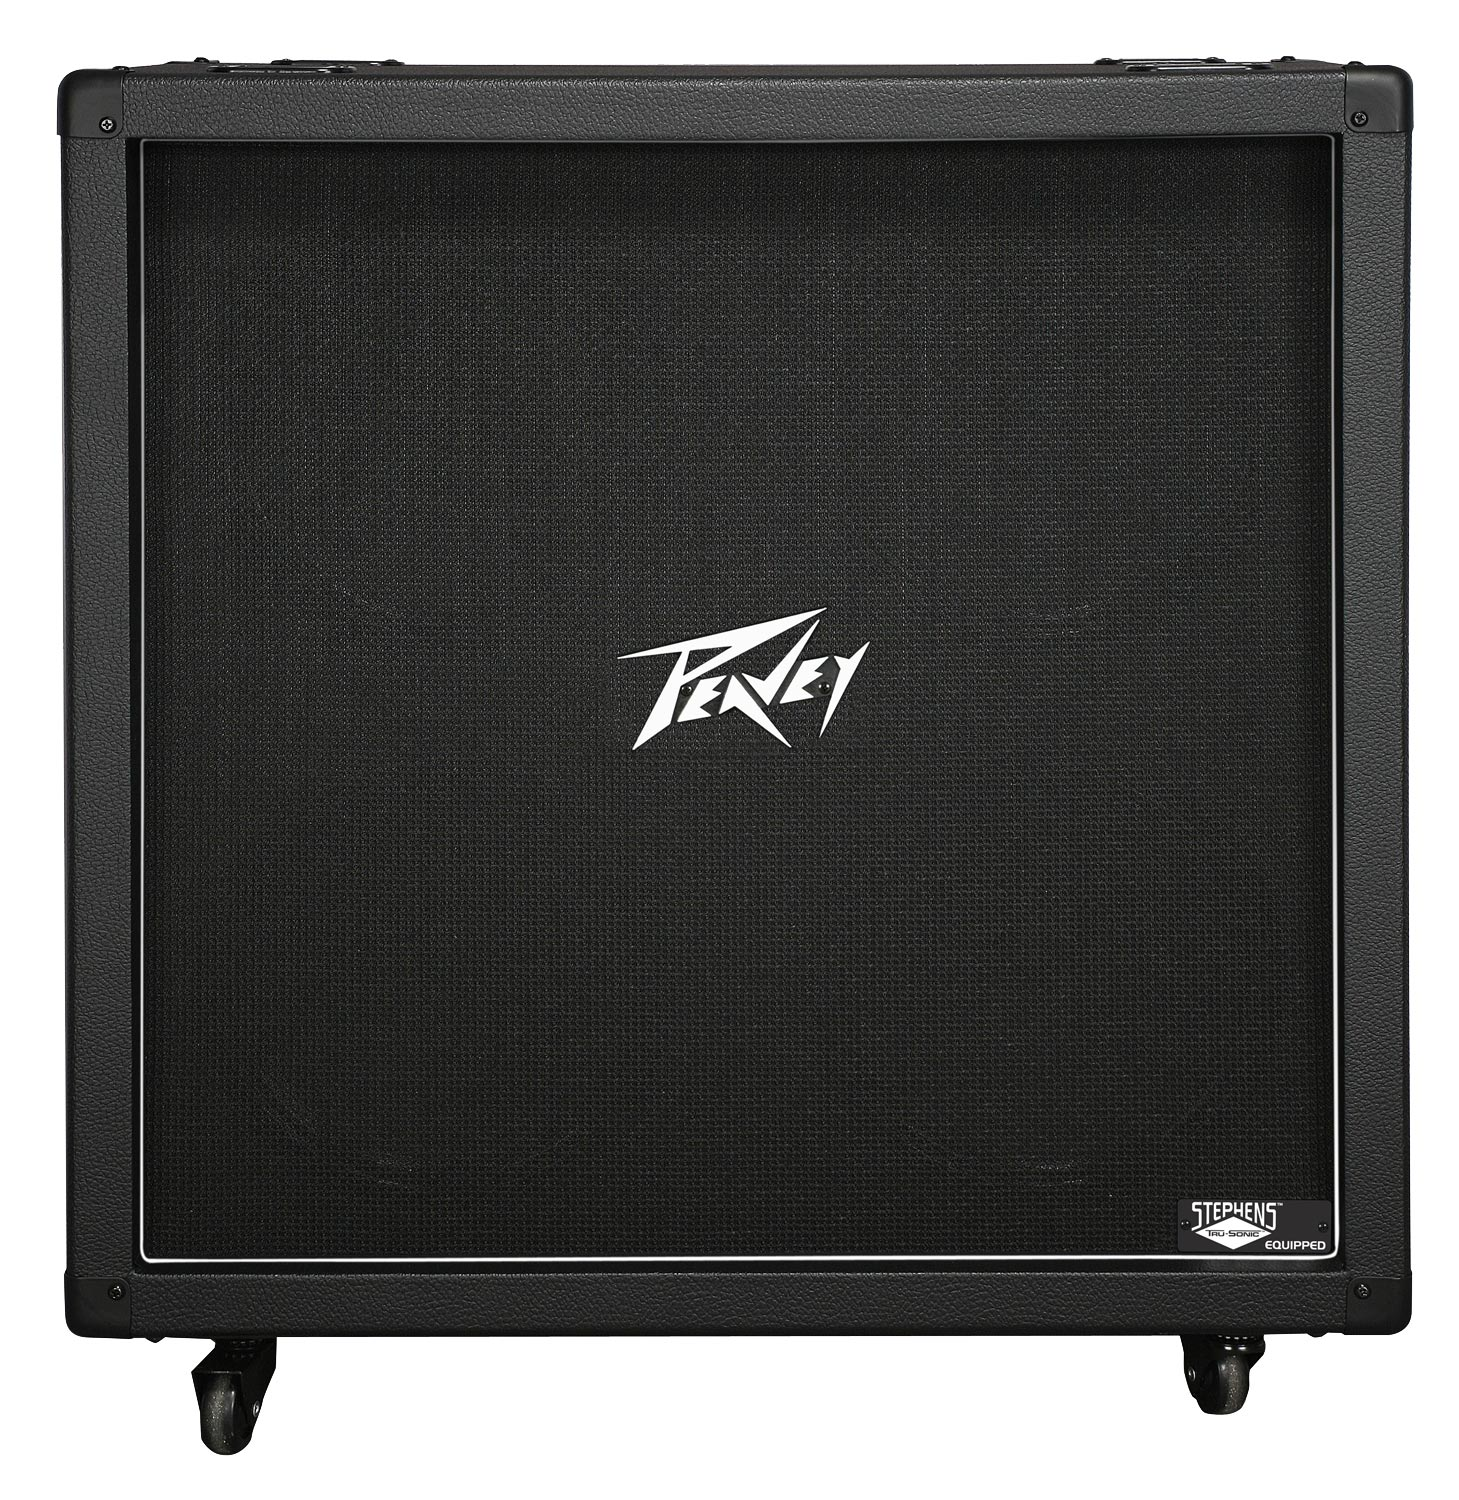 peavey 430b 412 guitar straight cabinet 4 12 speakers 6505 amp head new pev16 package89. Black Bedroom Furniture Sets. Home Design Ideas